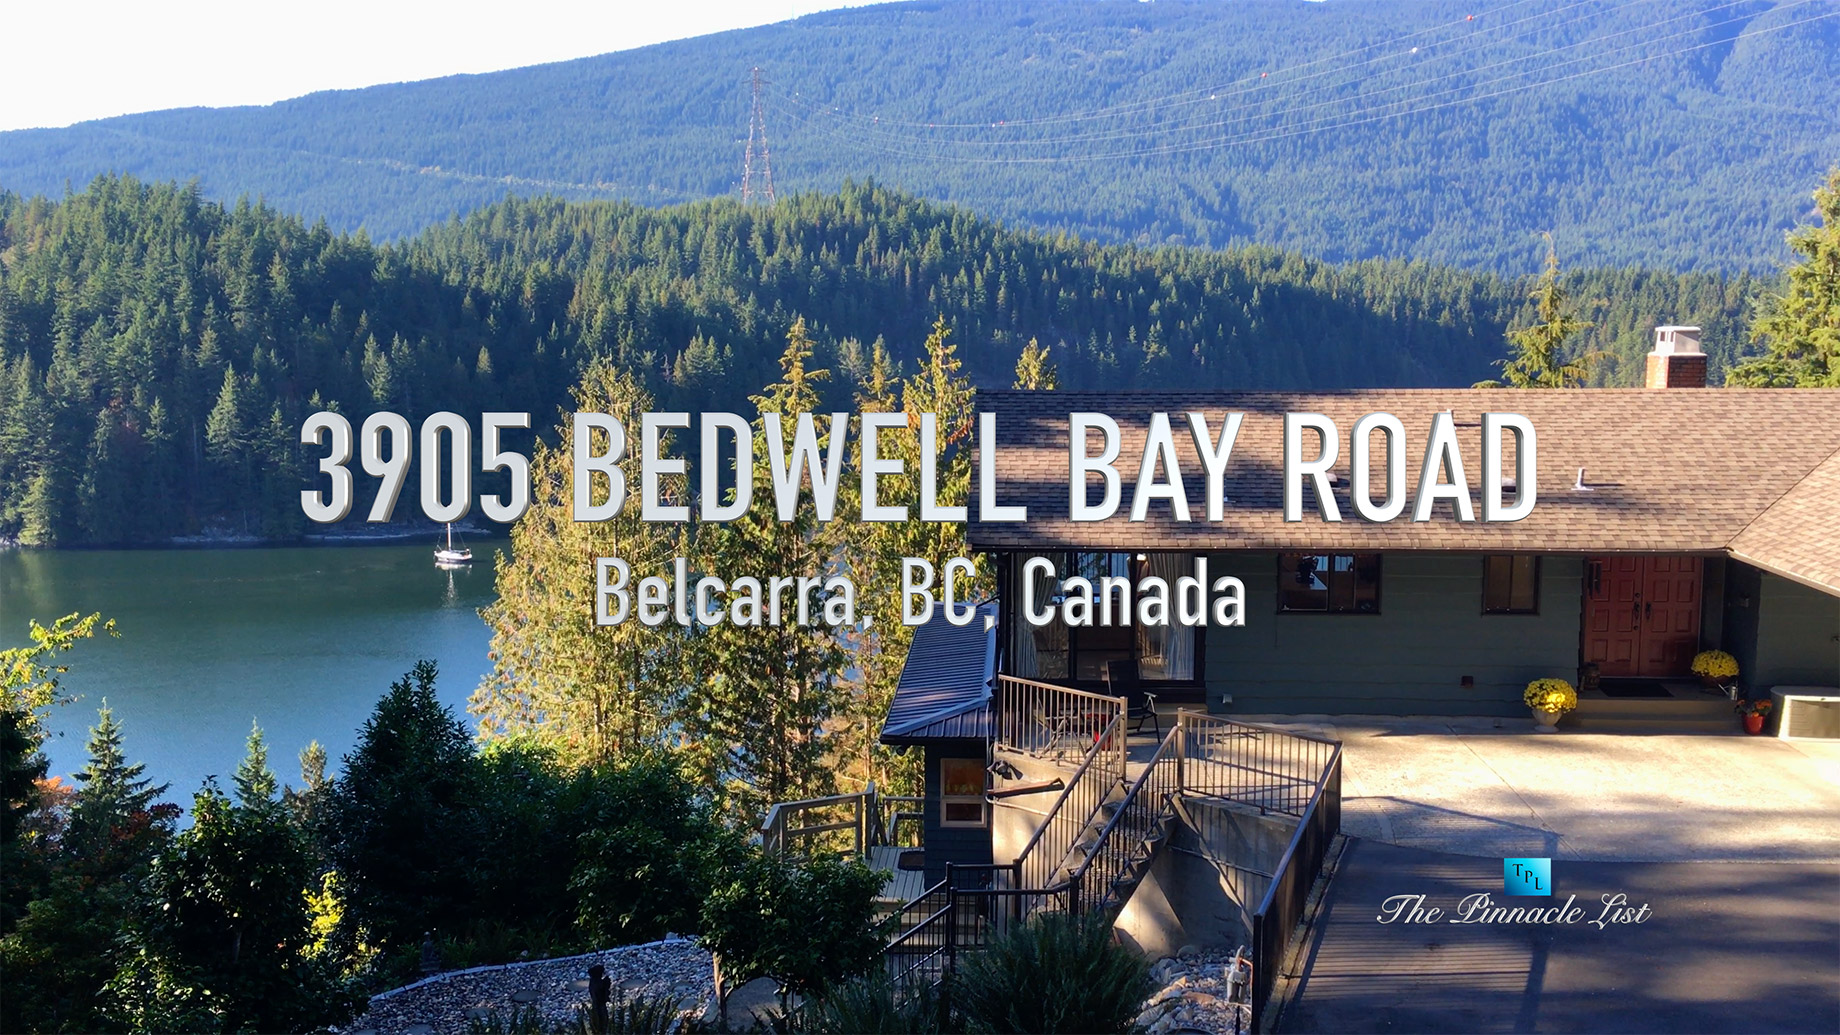 3905 Bedwell Bay Rd, Belcarra, BC, Canada - Luxury Real Estate